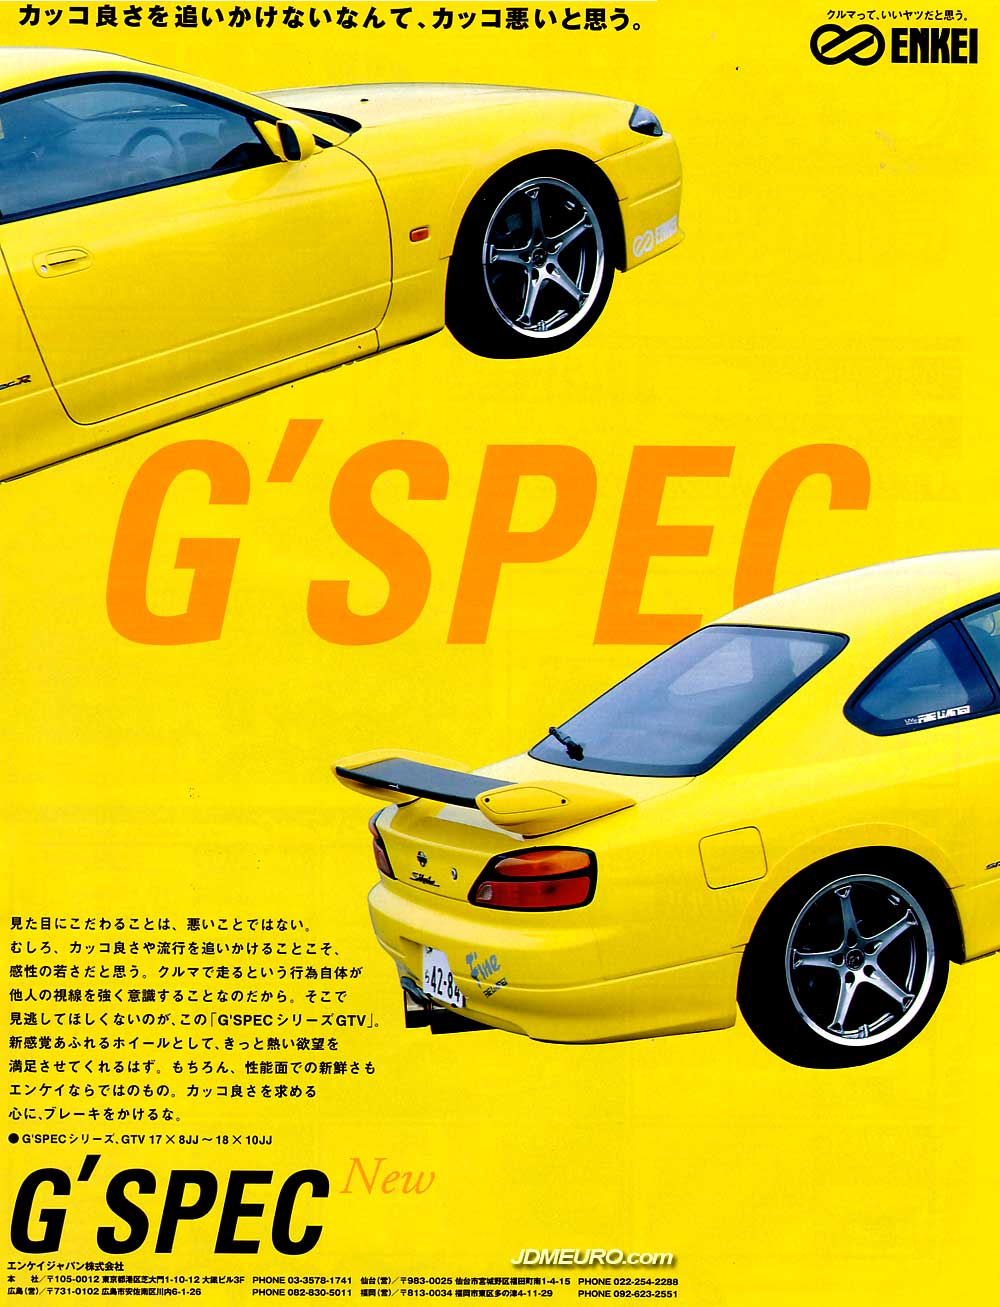 Enkei GTV G'SPEC / Stillen GTV - JDM Wheels